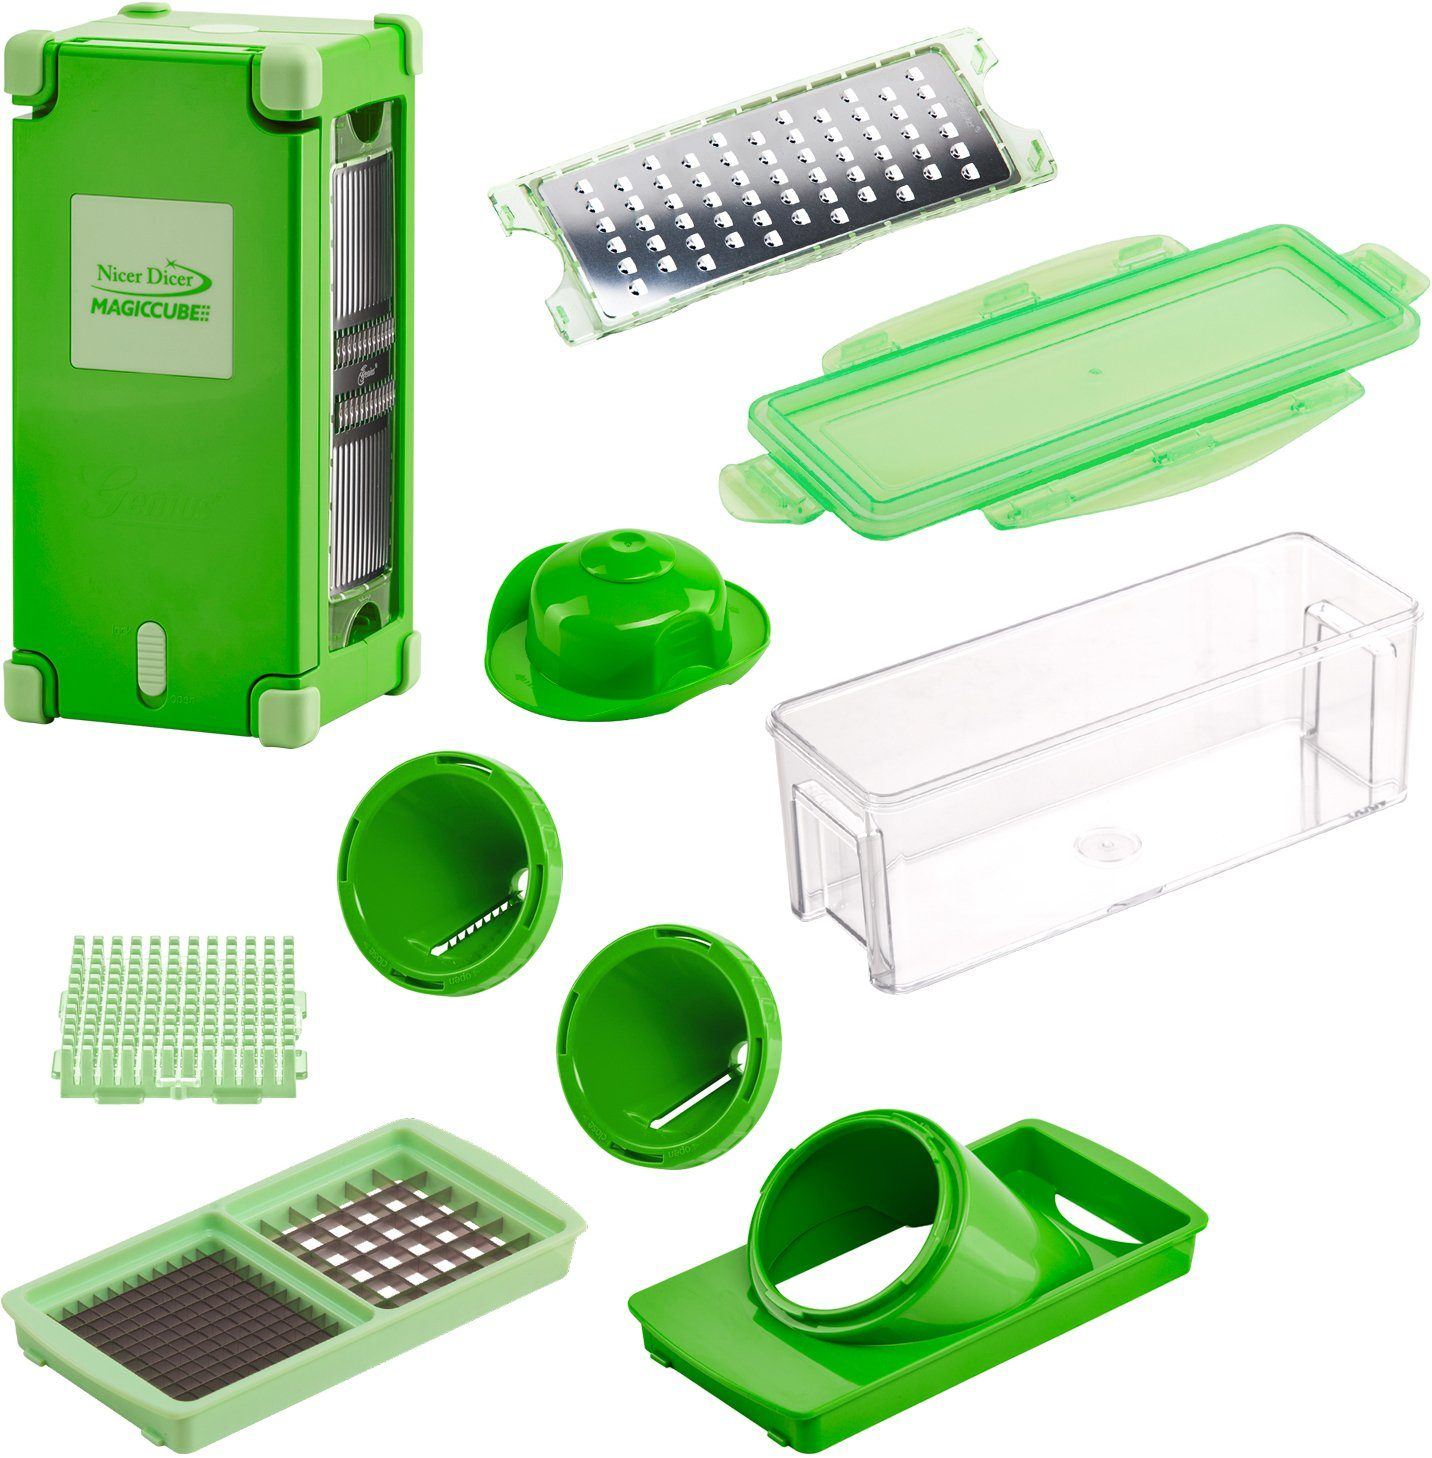 Genius Nicer Dicer Magic Cube, 12-teilig, inkl. Nicer Julietti Spiralschneider, 1200 ml